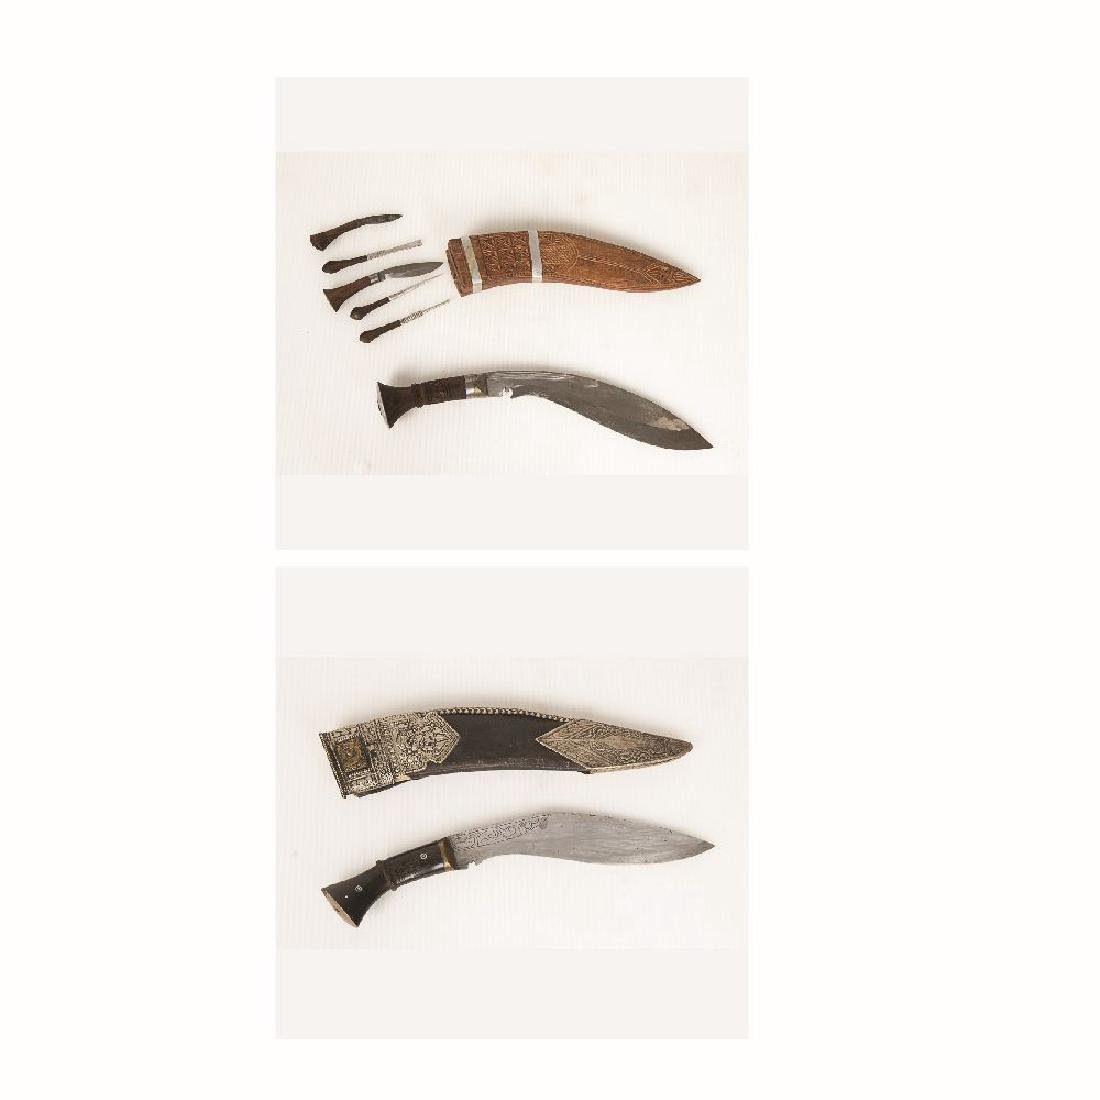 Two Gurkha Kukri Knives, Nepal, 19th/20th Century,